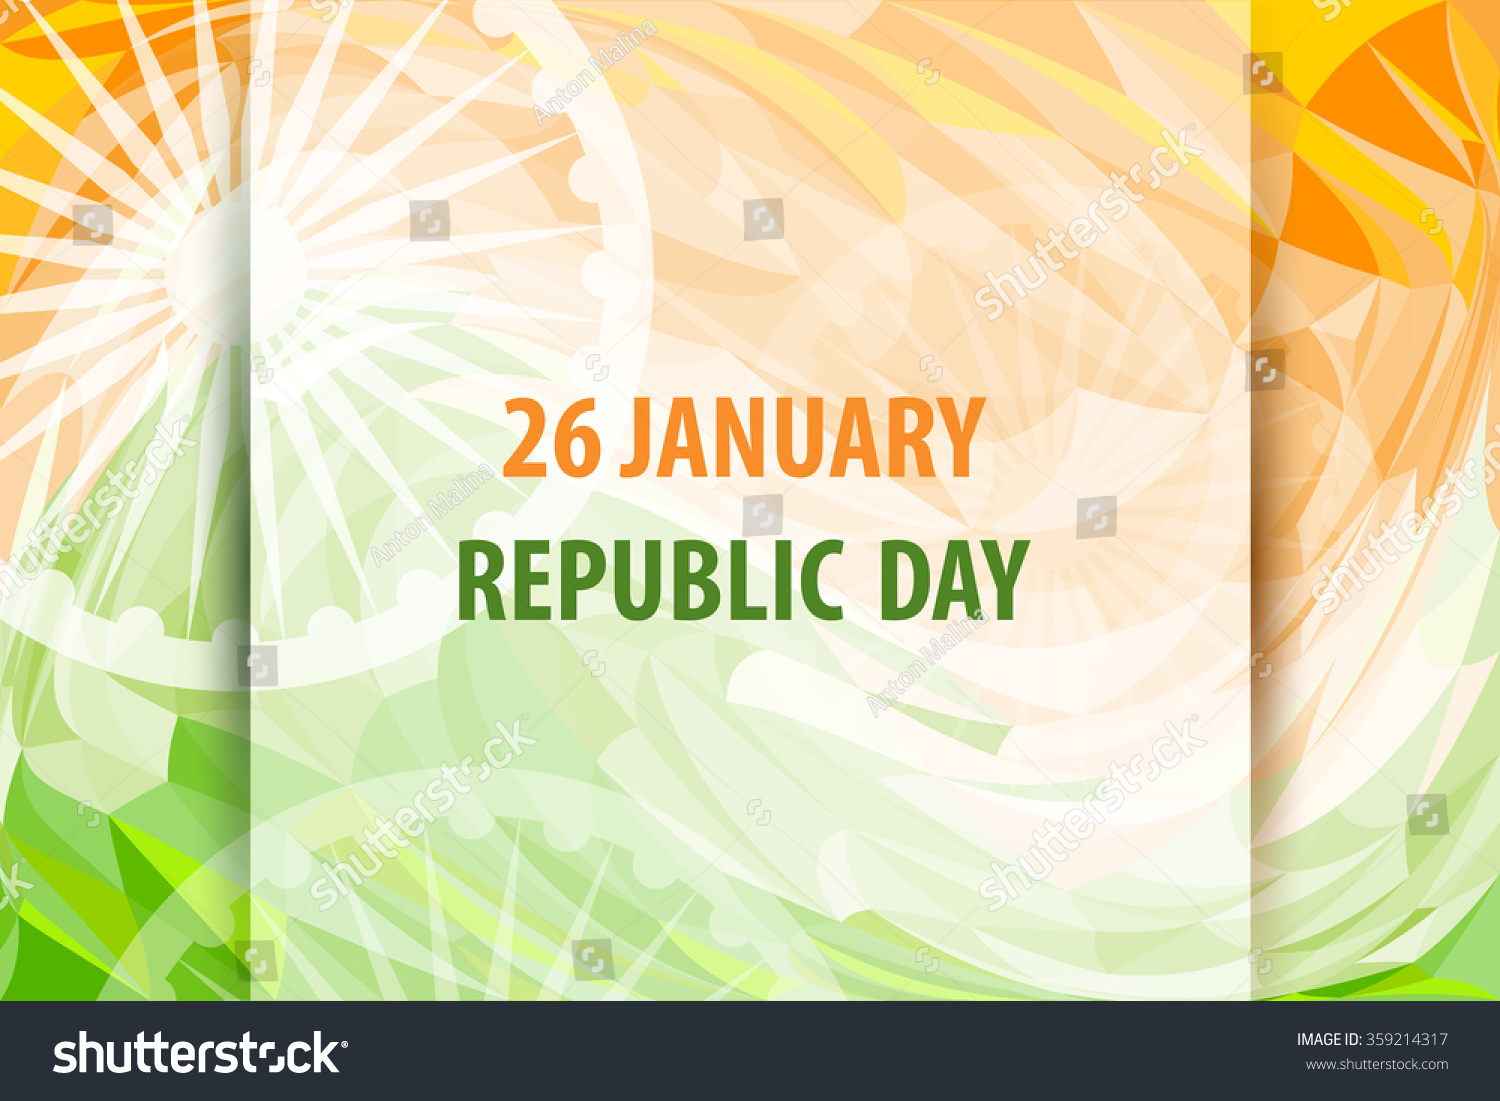 Republic Day India 26 January Indian Stock Vector 359214317 ...